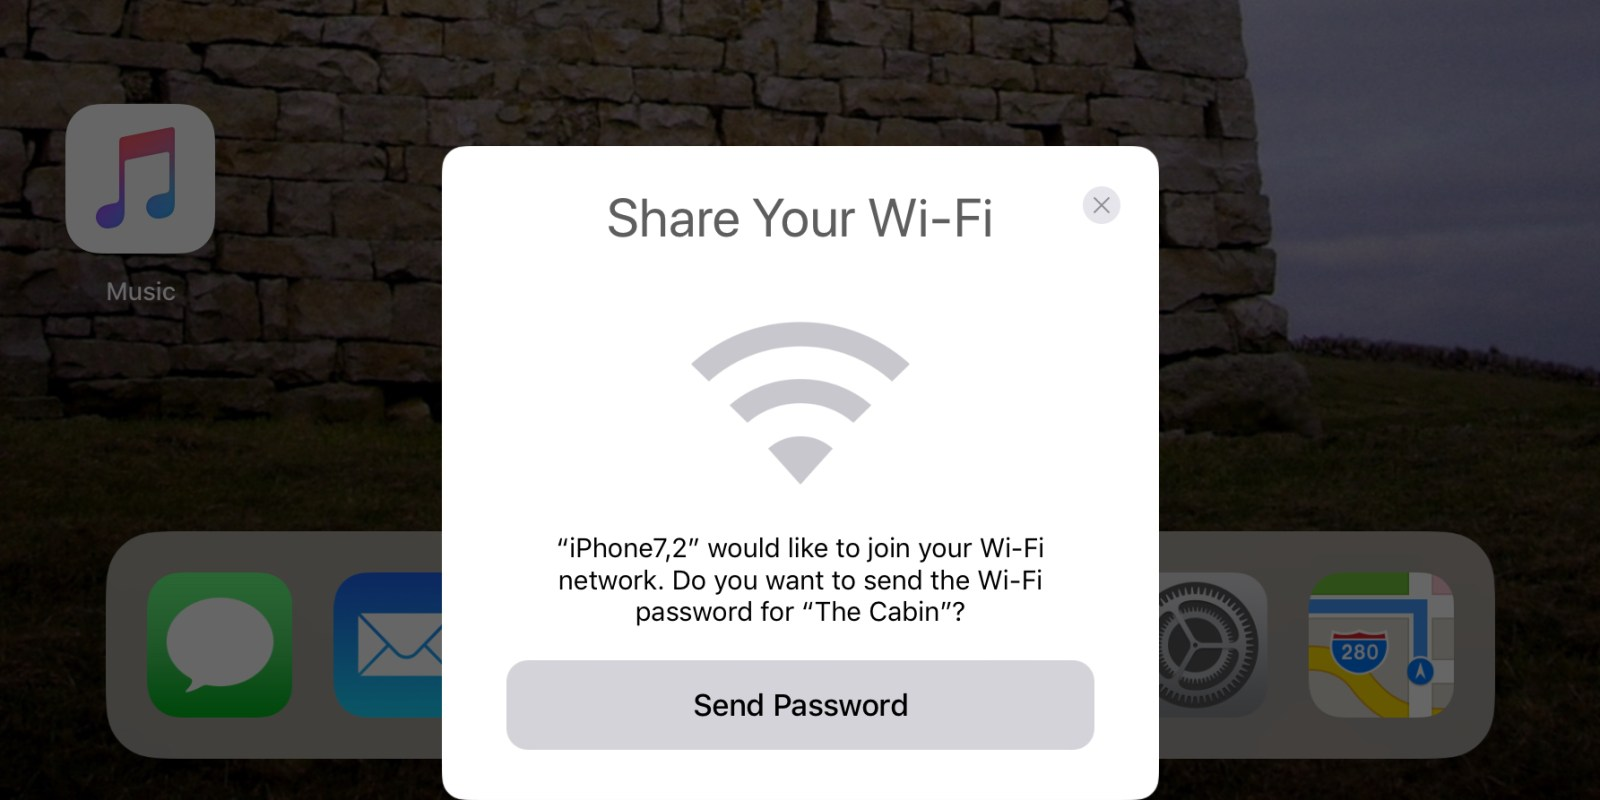 Easily share your WiFi with friends on iOS 11, automatically sends passwords to nearby devices